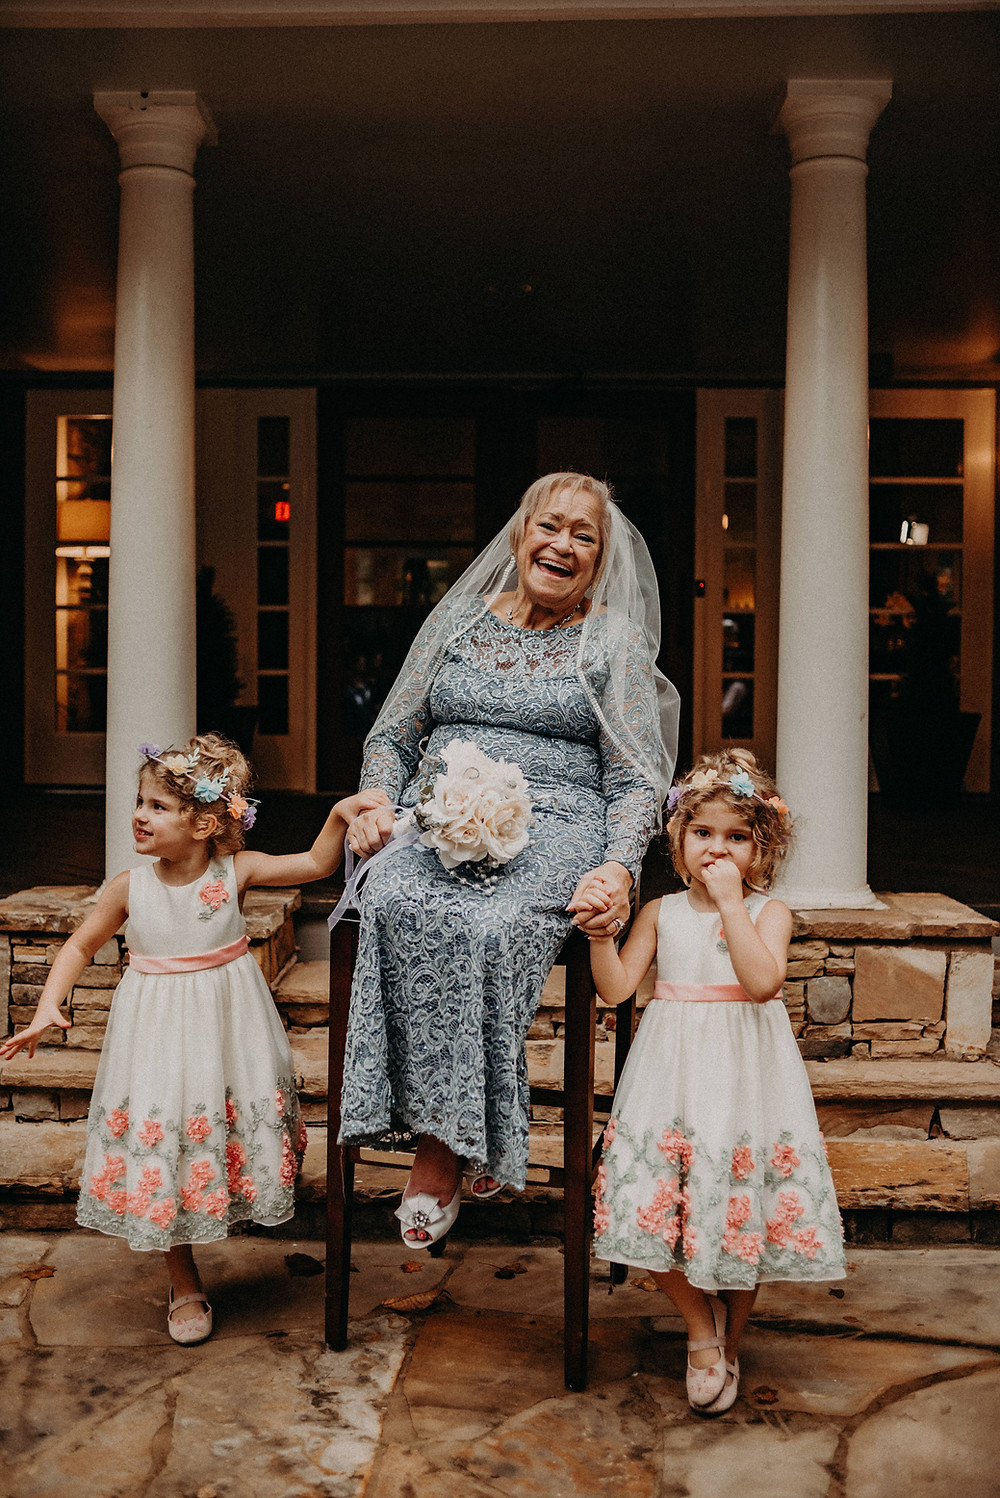 Elder bride with her two flower girls